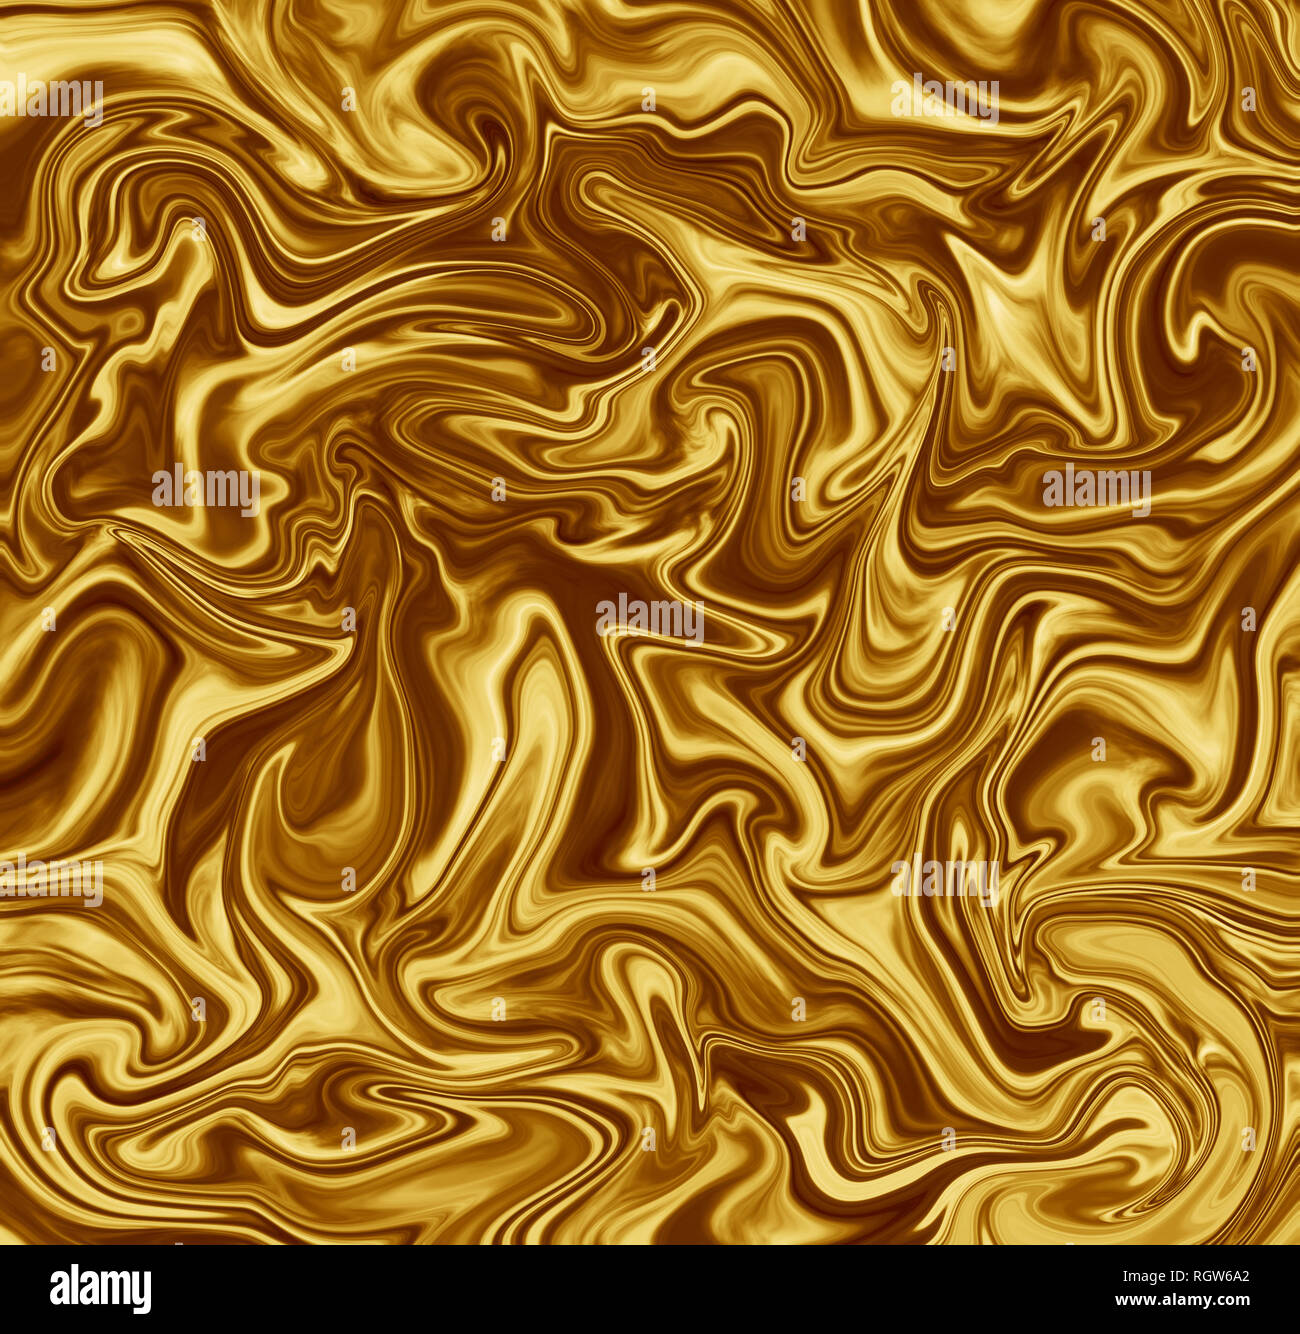 High Resolution Liquid Marble Texture Design Golden Marbling Satin Or Silk Like Surface Vibrant Abstract Digital Paint Design Background Stock Photo Alamy